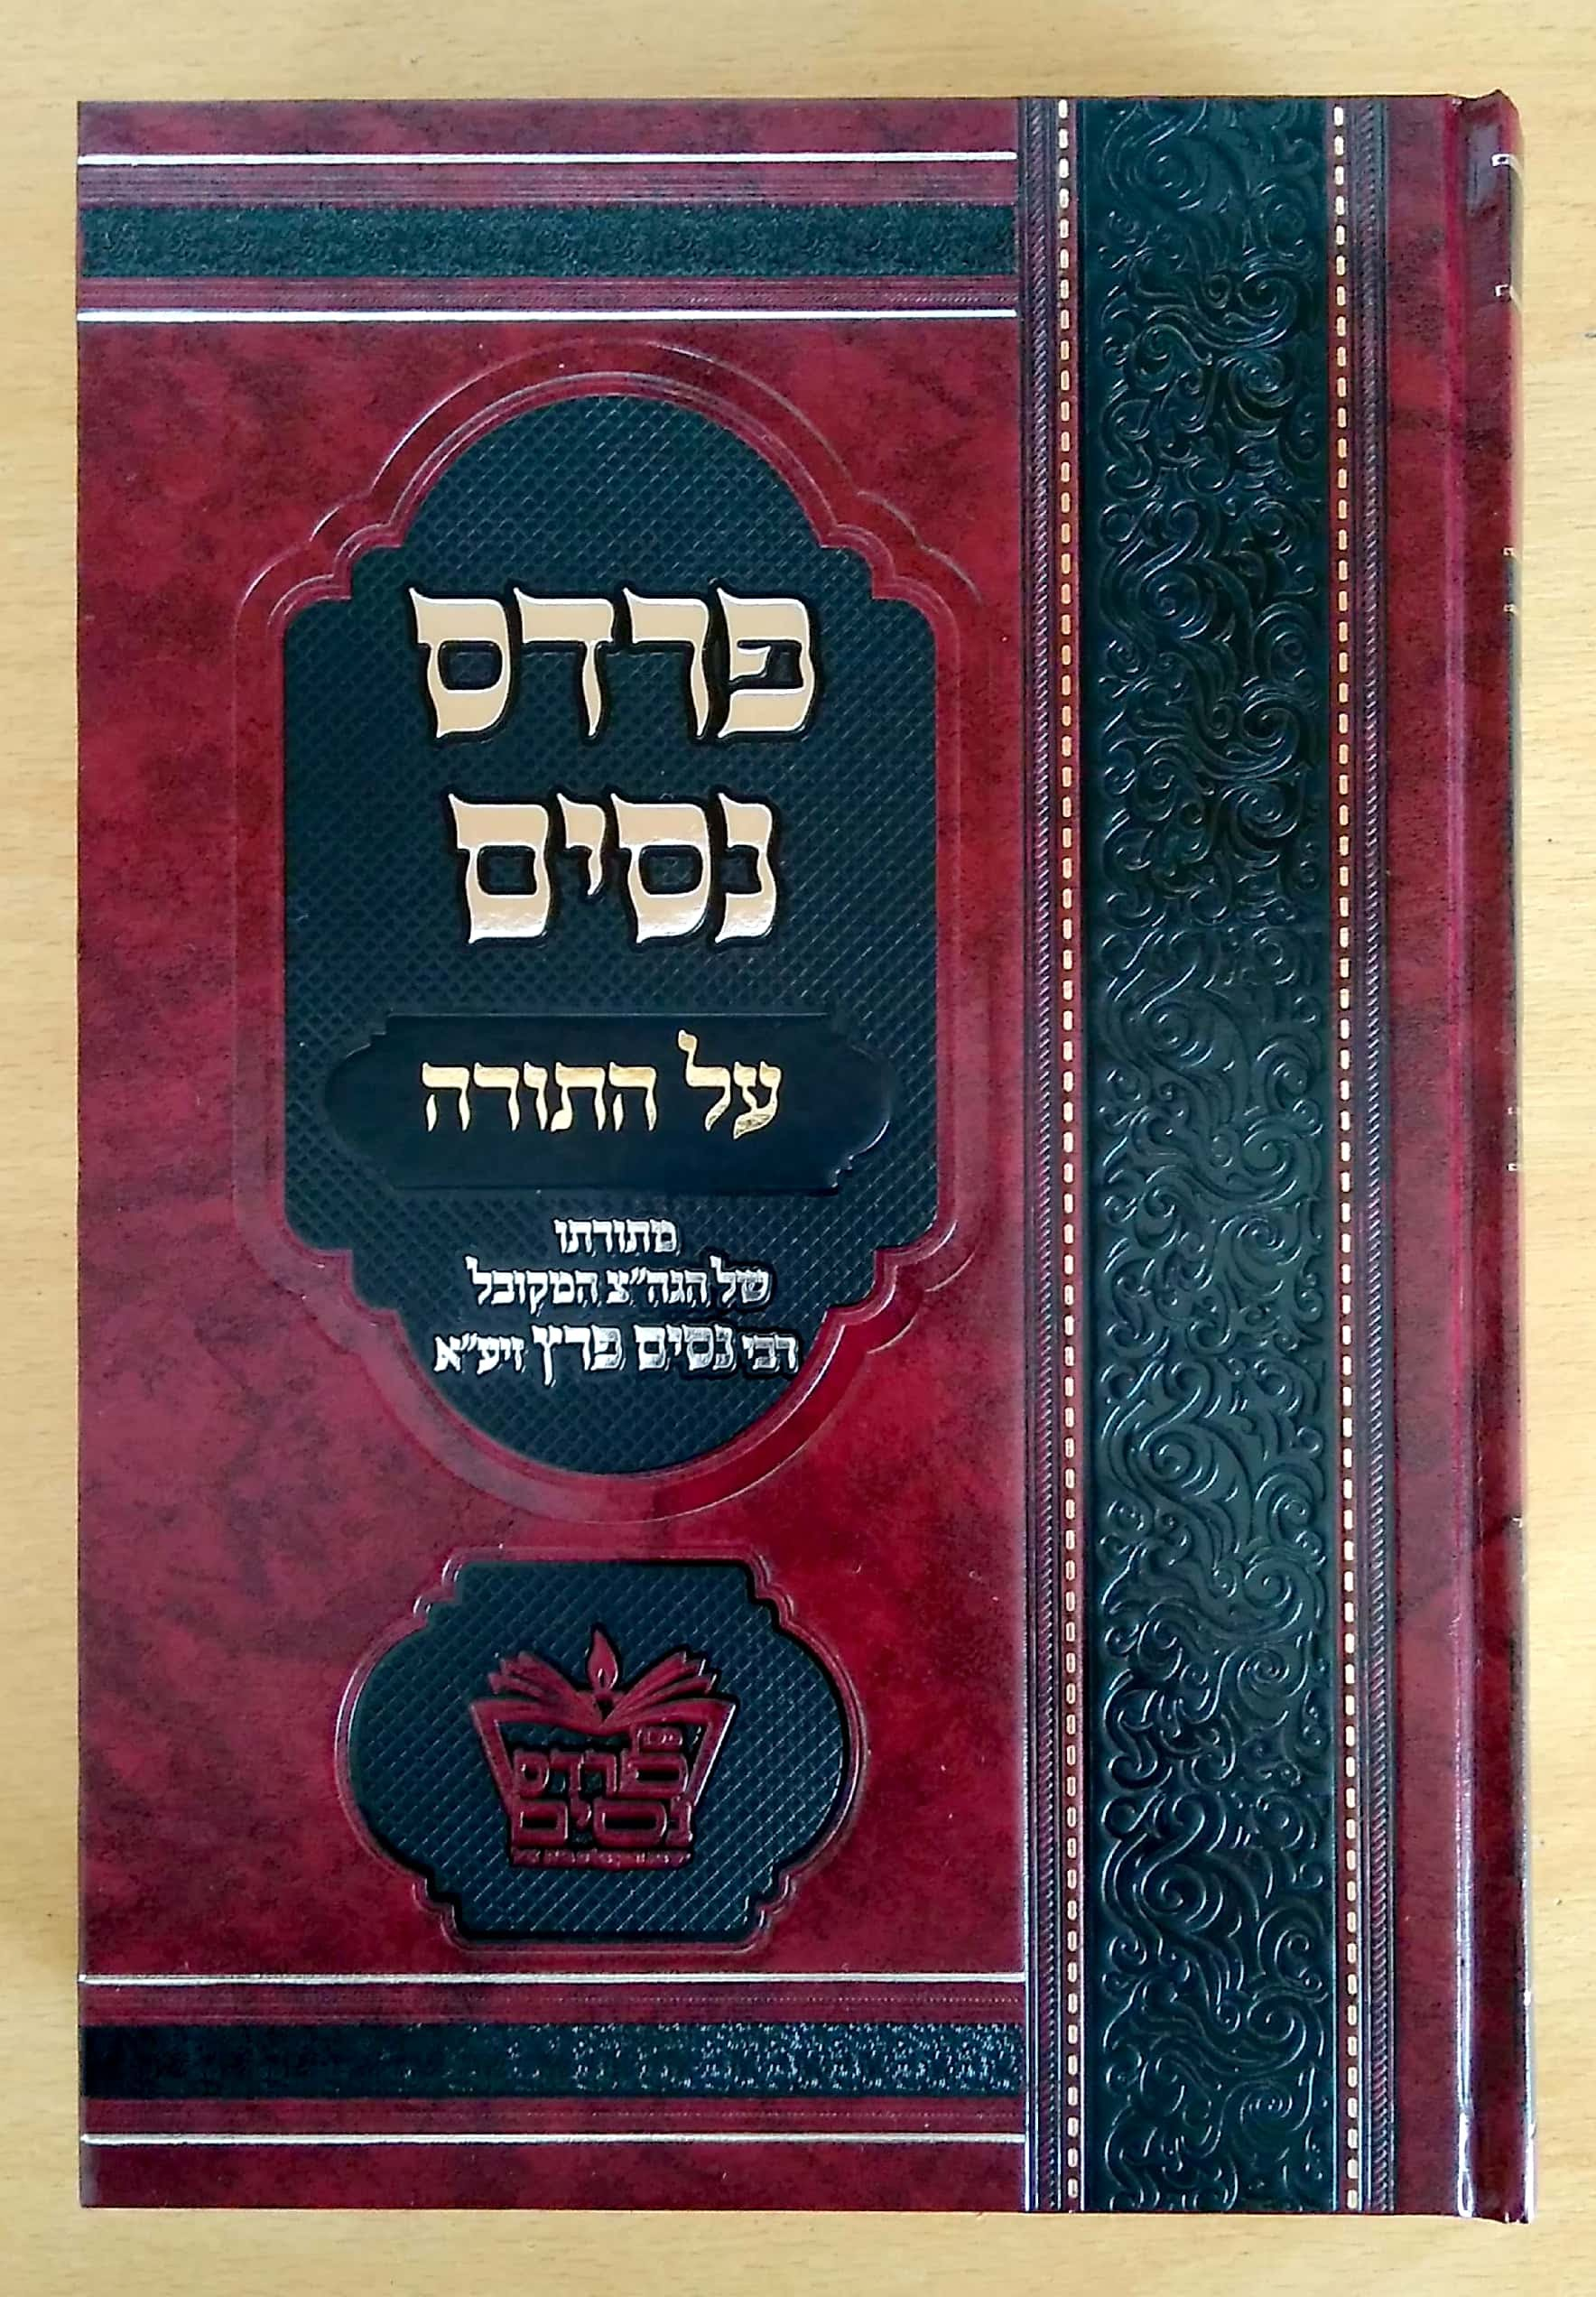 https://sites.google.com/site/rabbinissimperetz/pardesbook